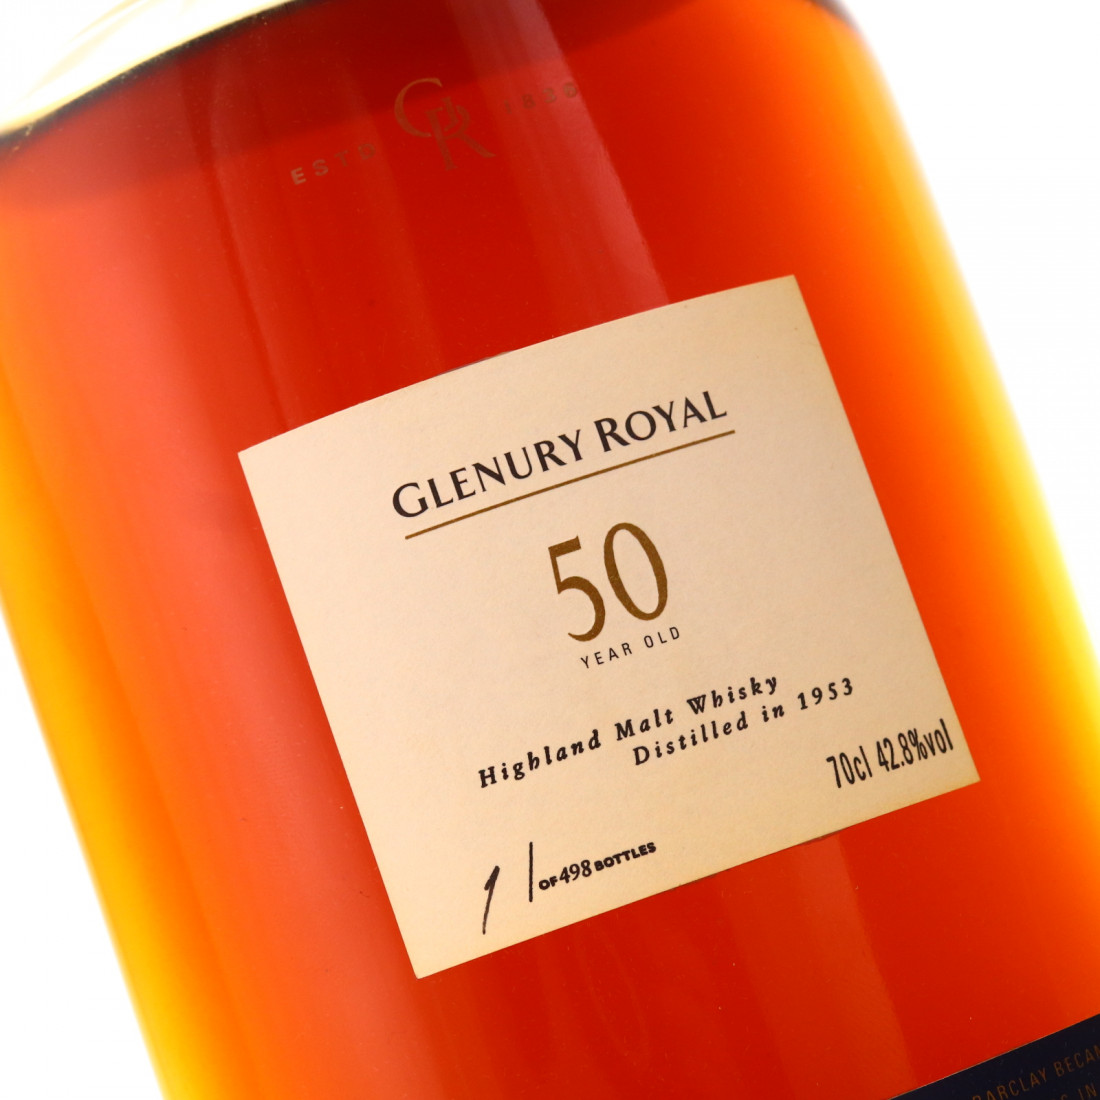 Glenury Royal 1953 50 Year Old / Bottle #1